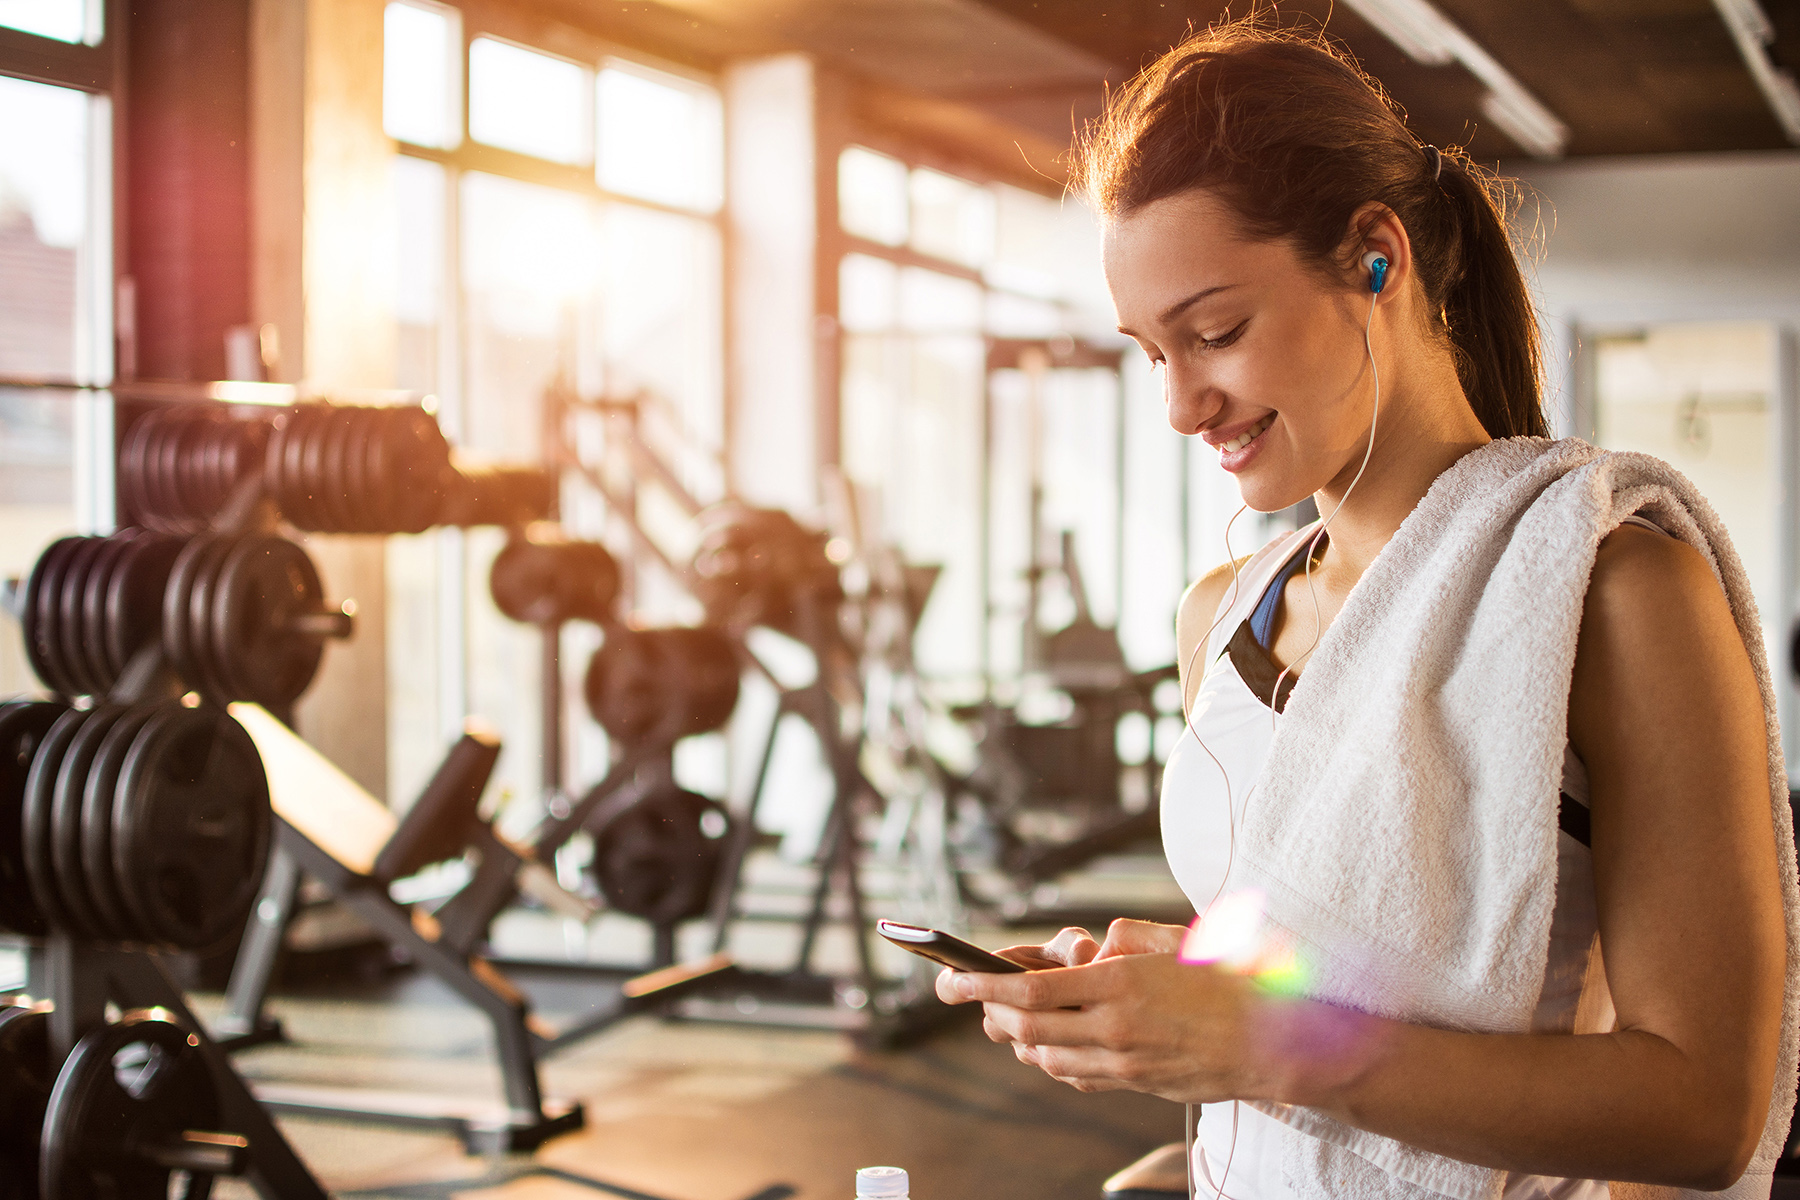 Moving out checklist: gym membership